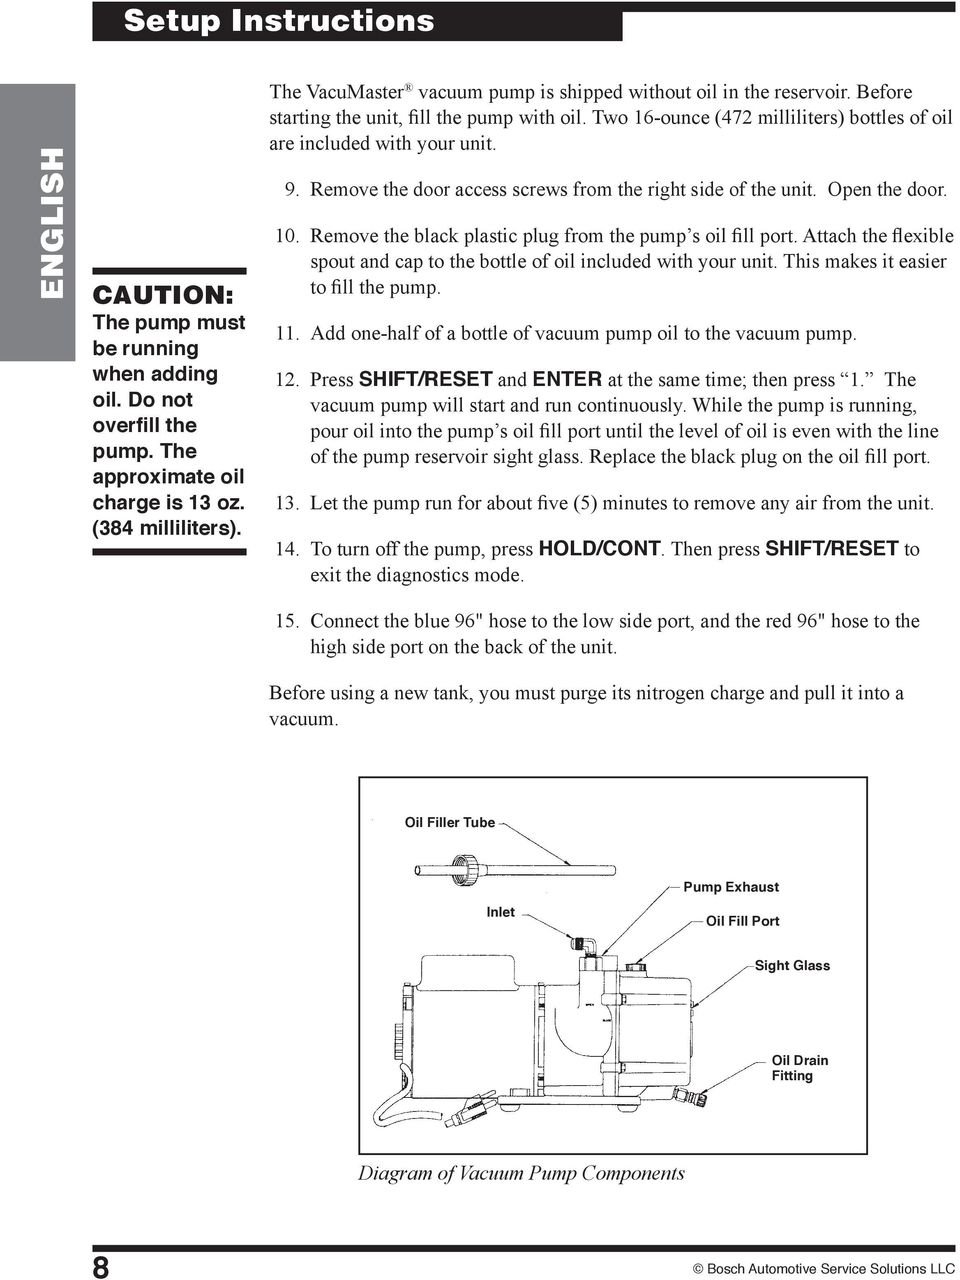 Recovery Recycling Recharging Unit Pdf Yellow Jacket Vacuum Pump Wiring Diagram Remove The Door Access Screws From Right Side Of Open